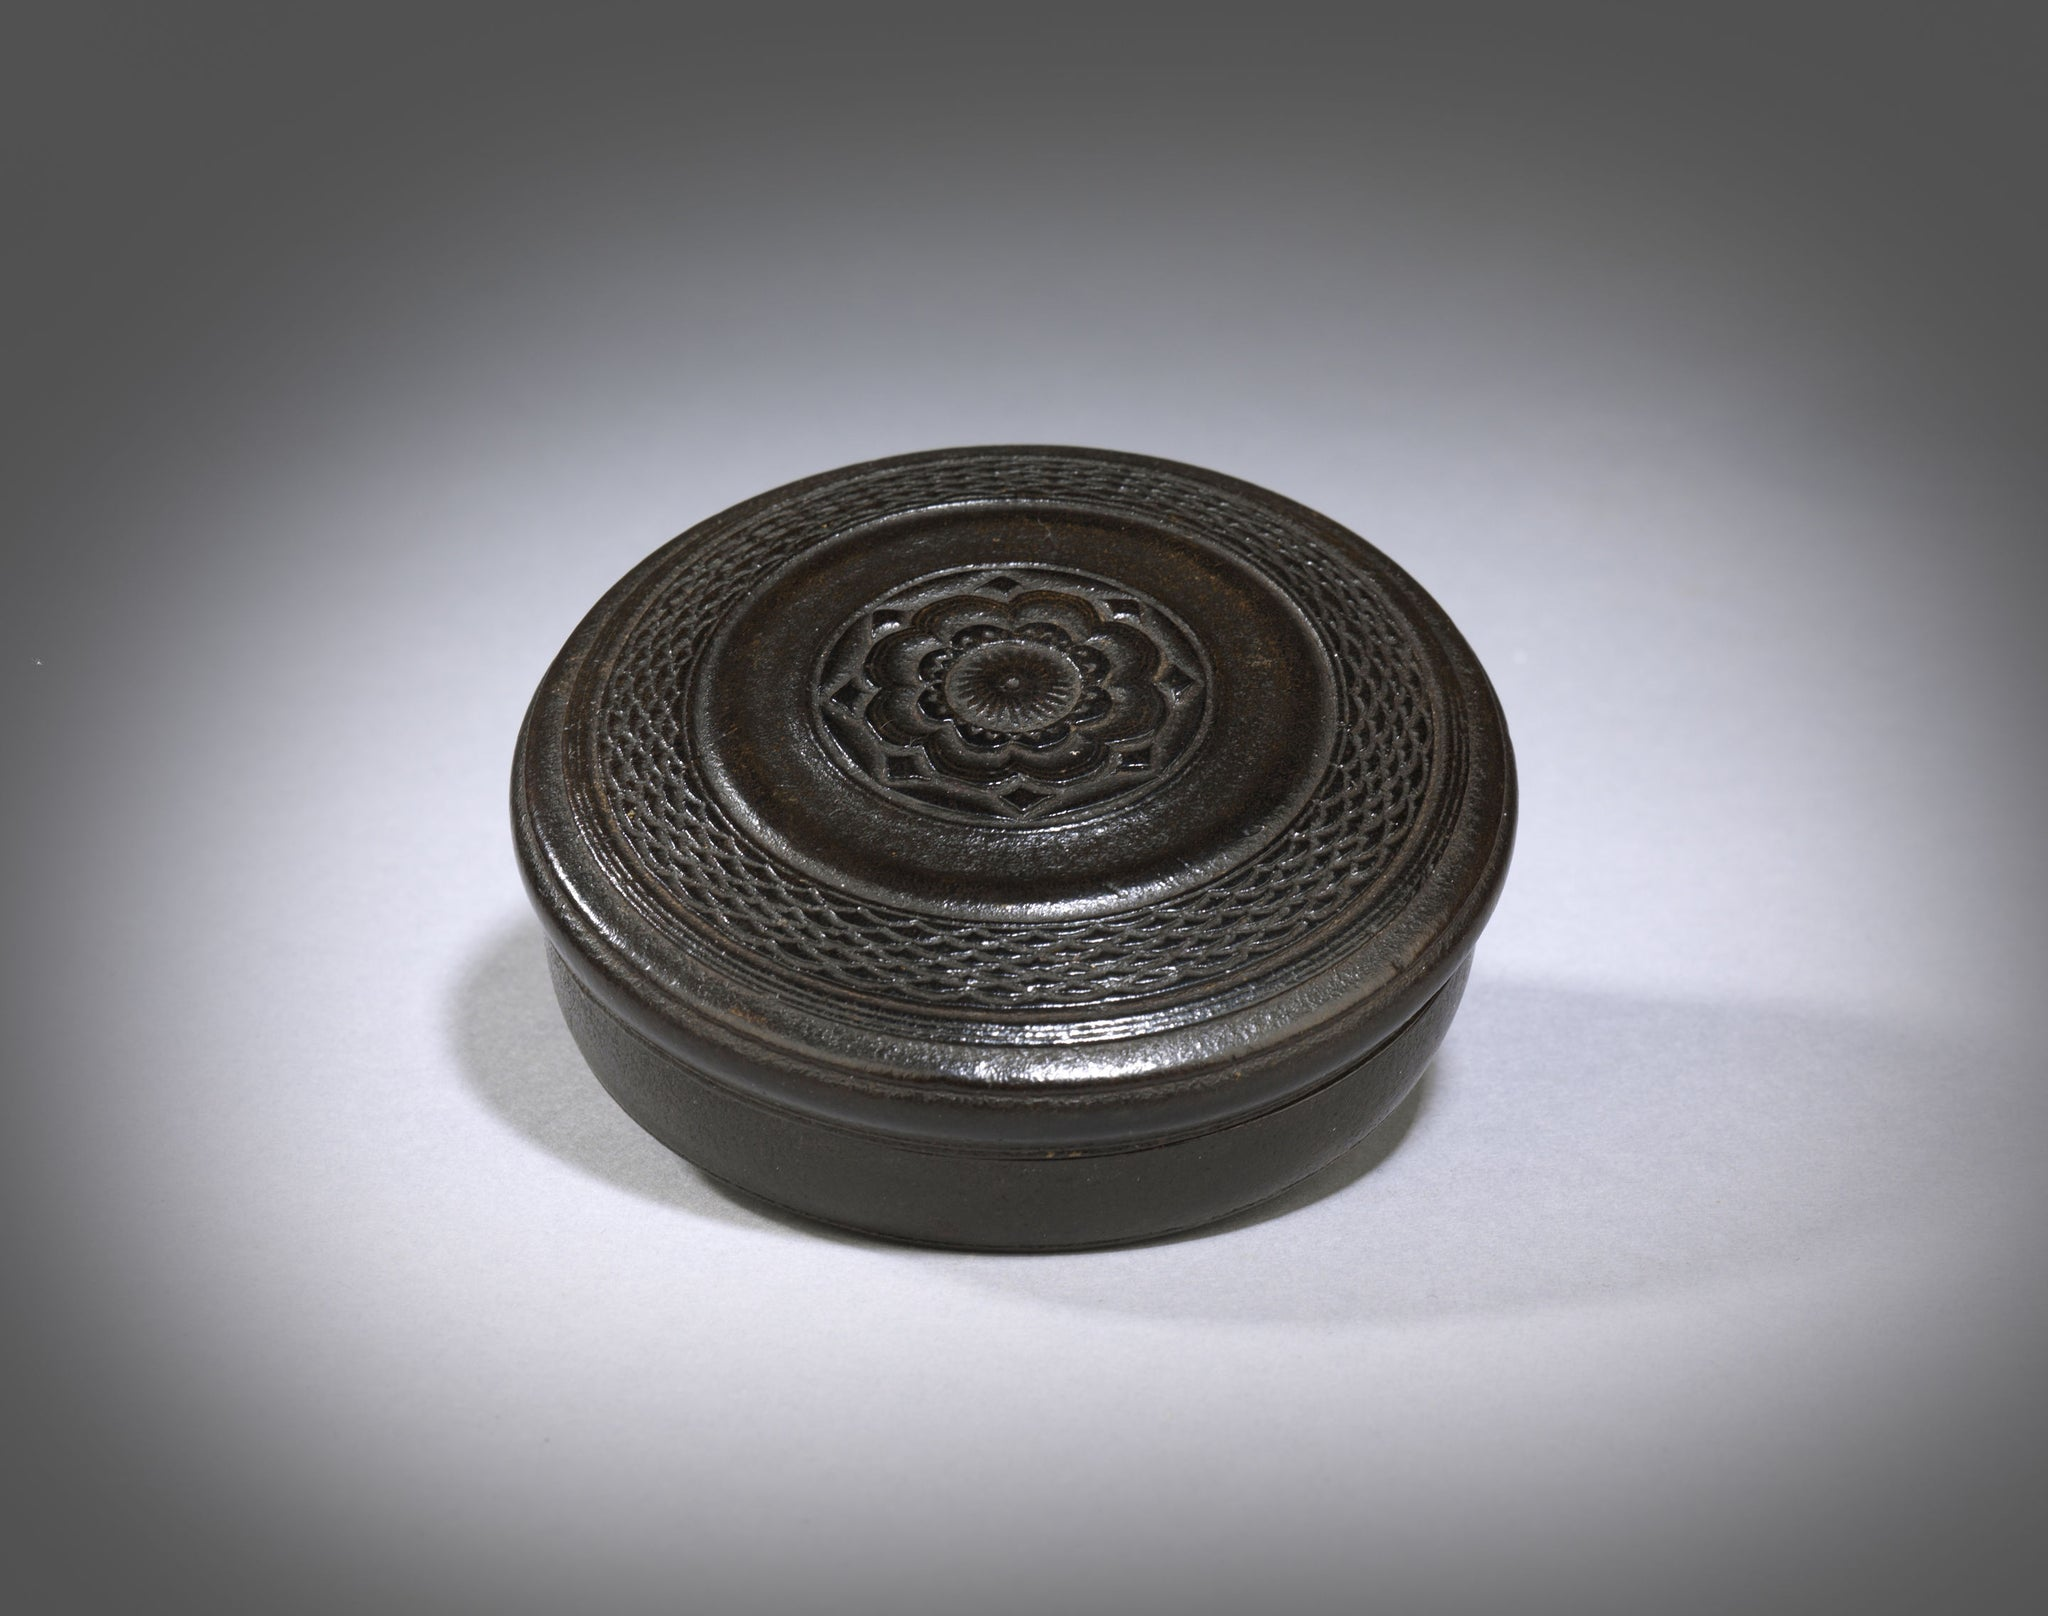 Rare Leather Circular Snuff or Tobacco Box